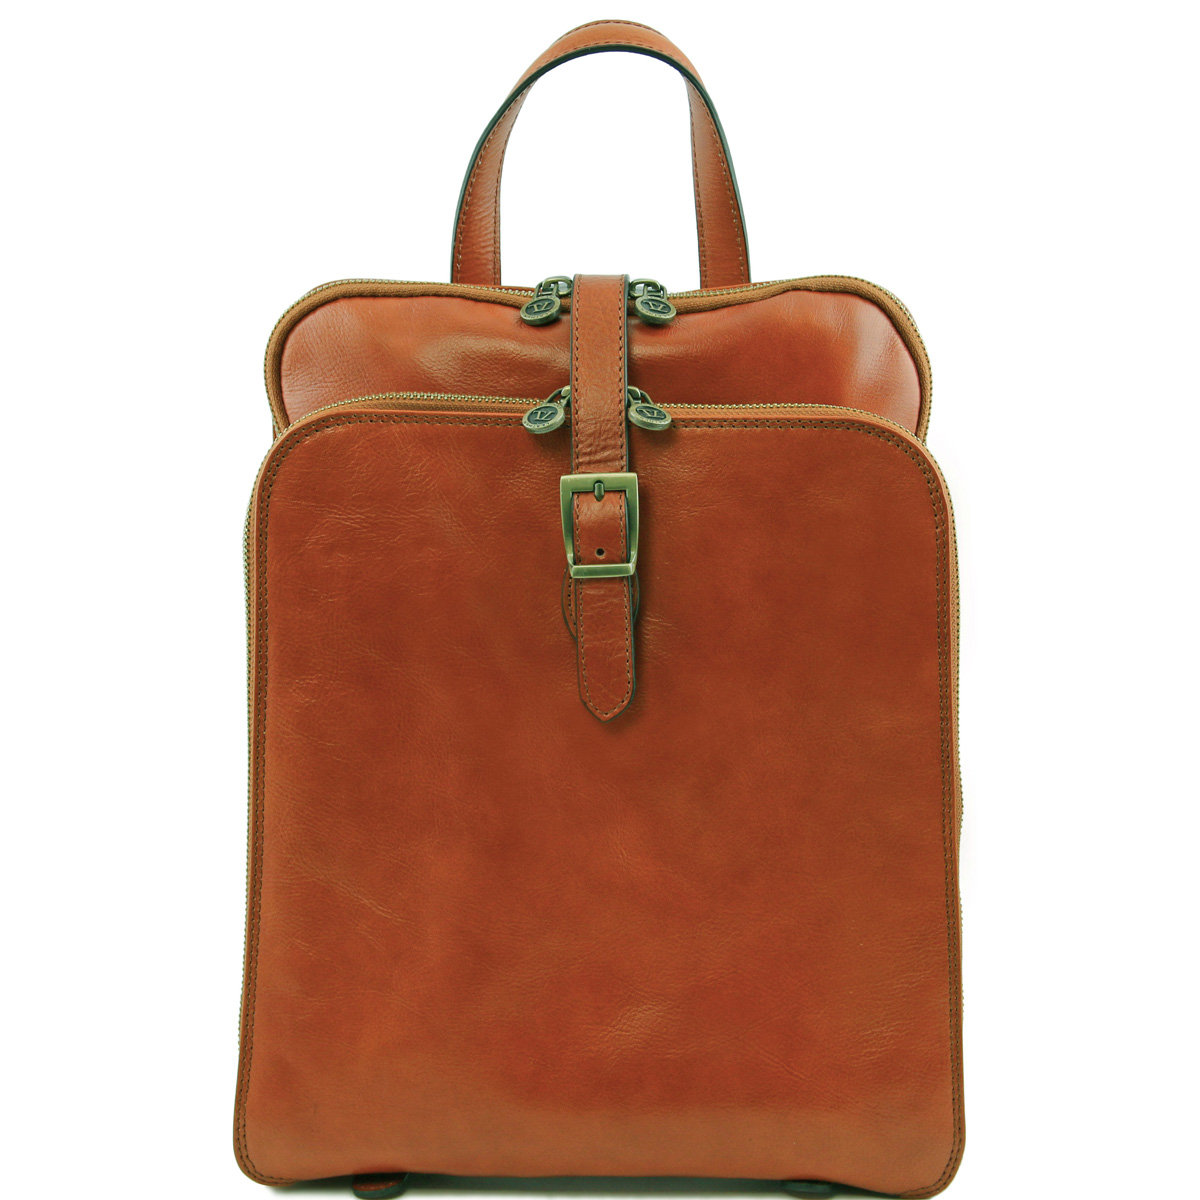 Tuscany Leather First Class Ryggsäck Taipei VK-TL141239 9c6f8f7752e77